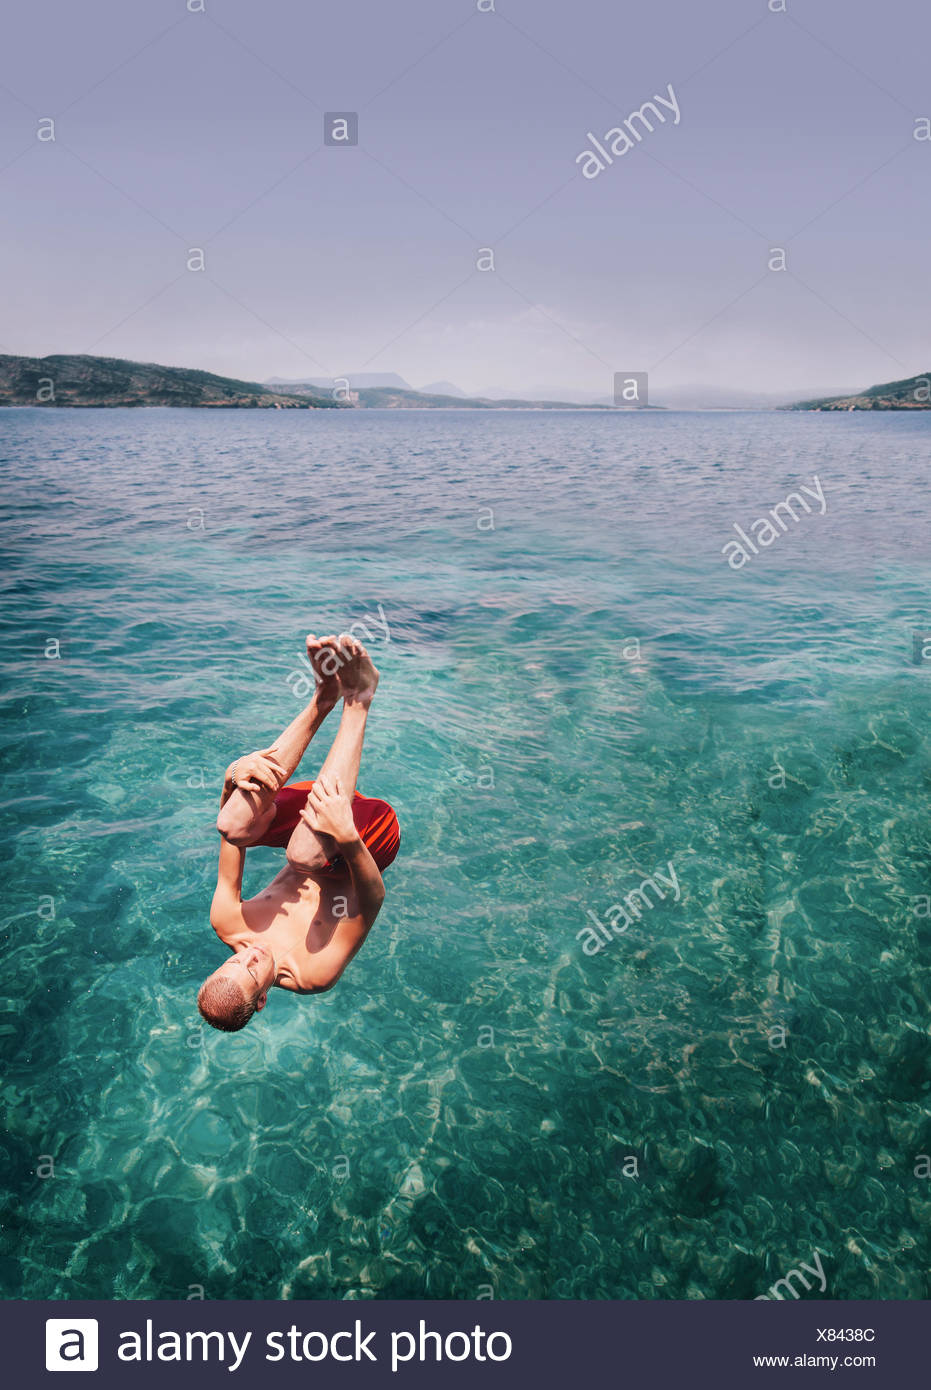 A young man somersaulting into the sea Stock Photo